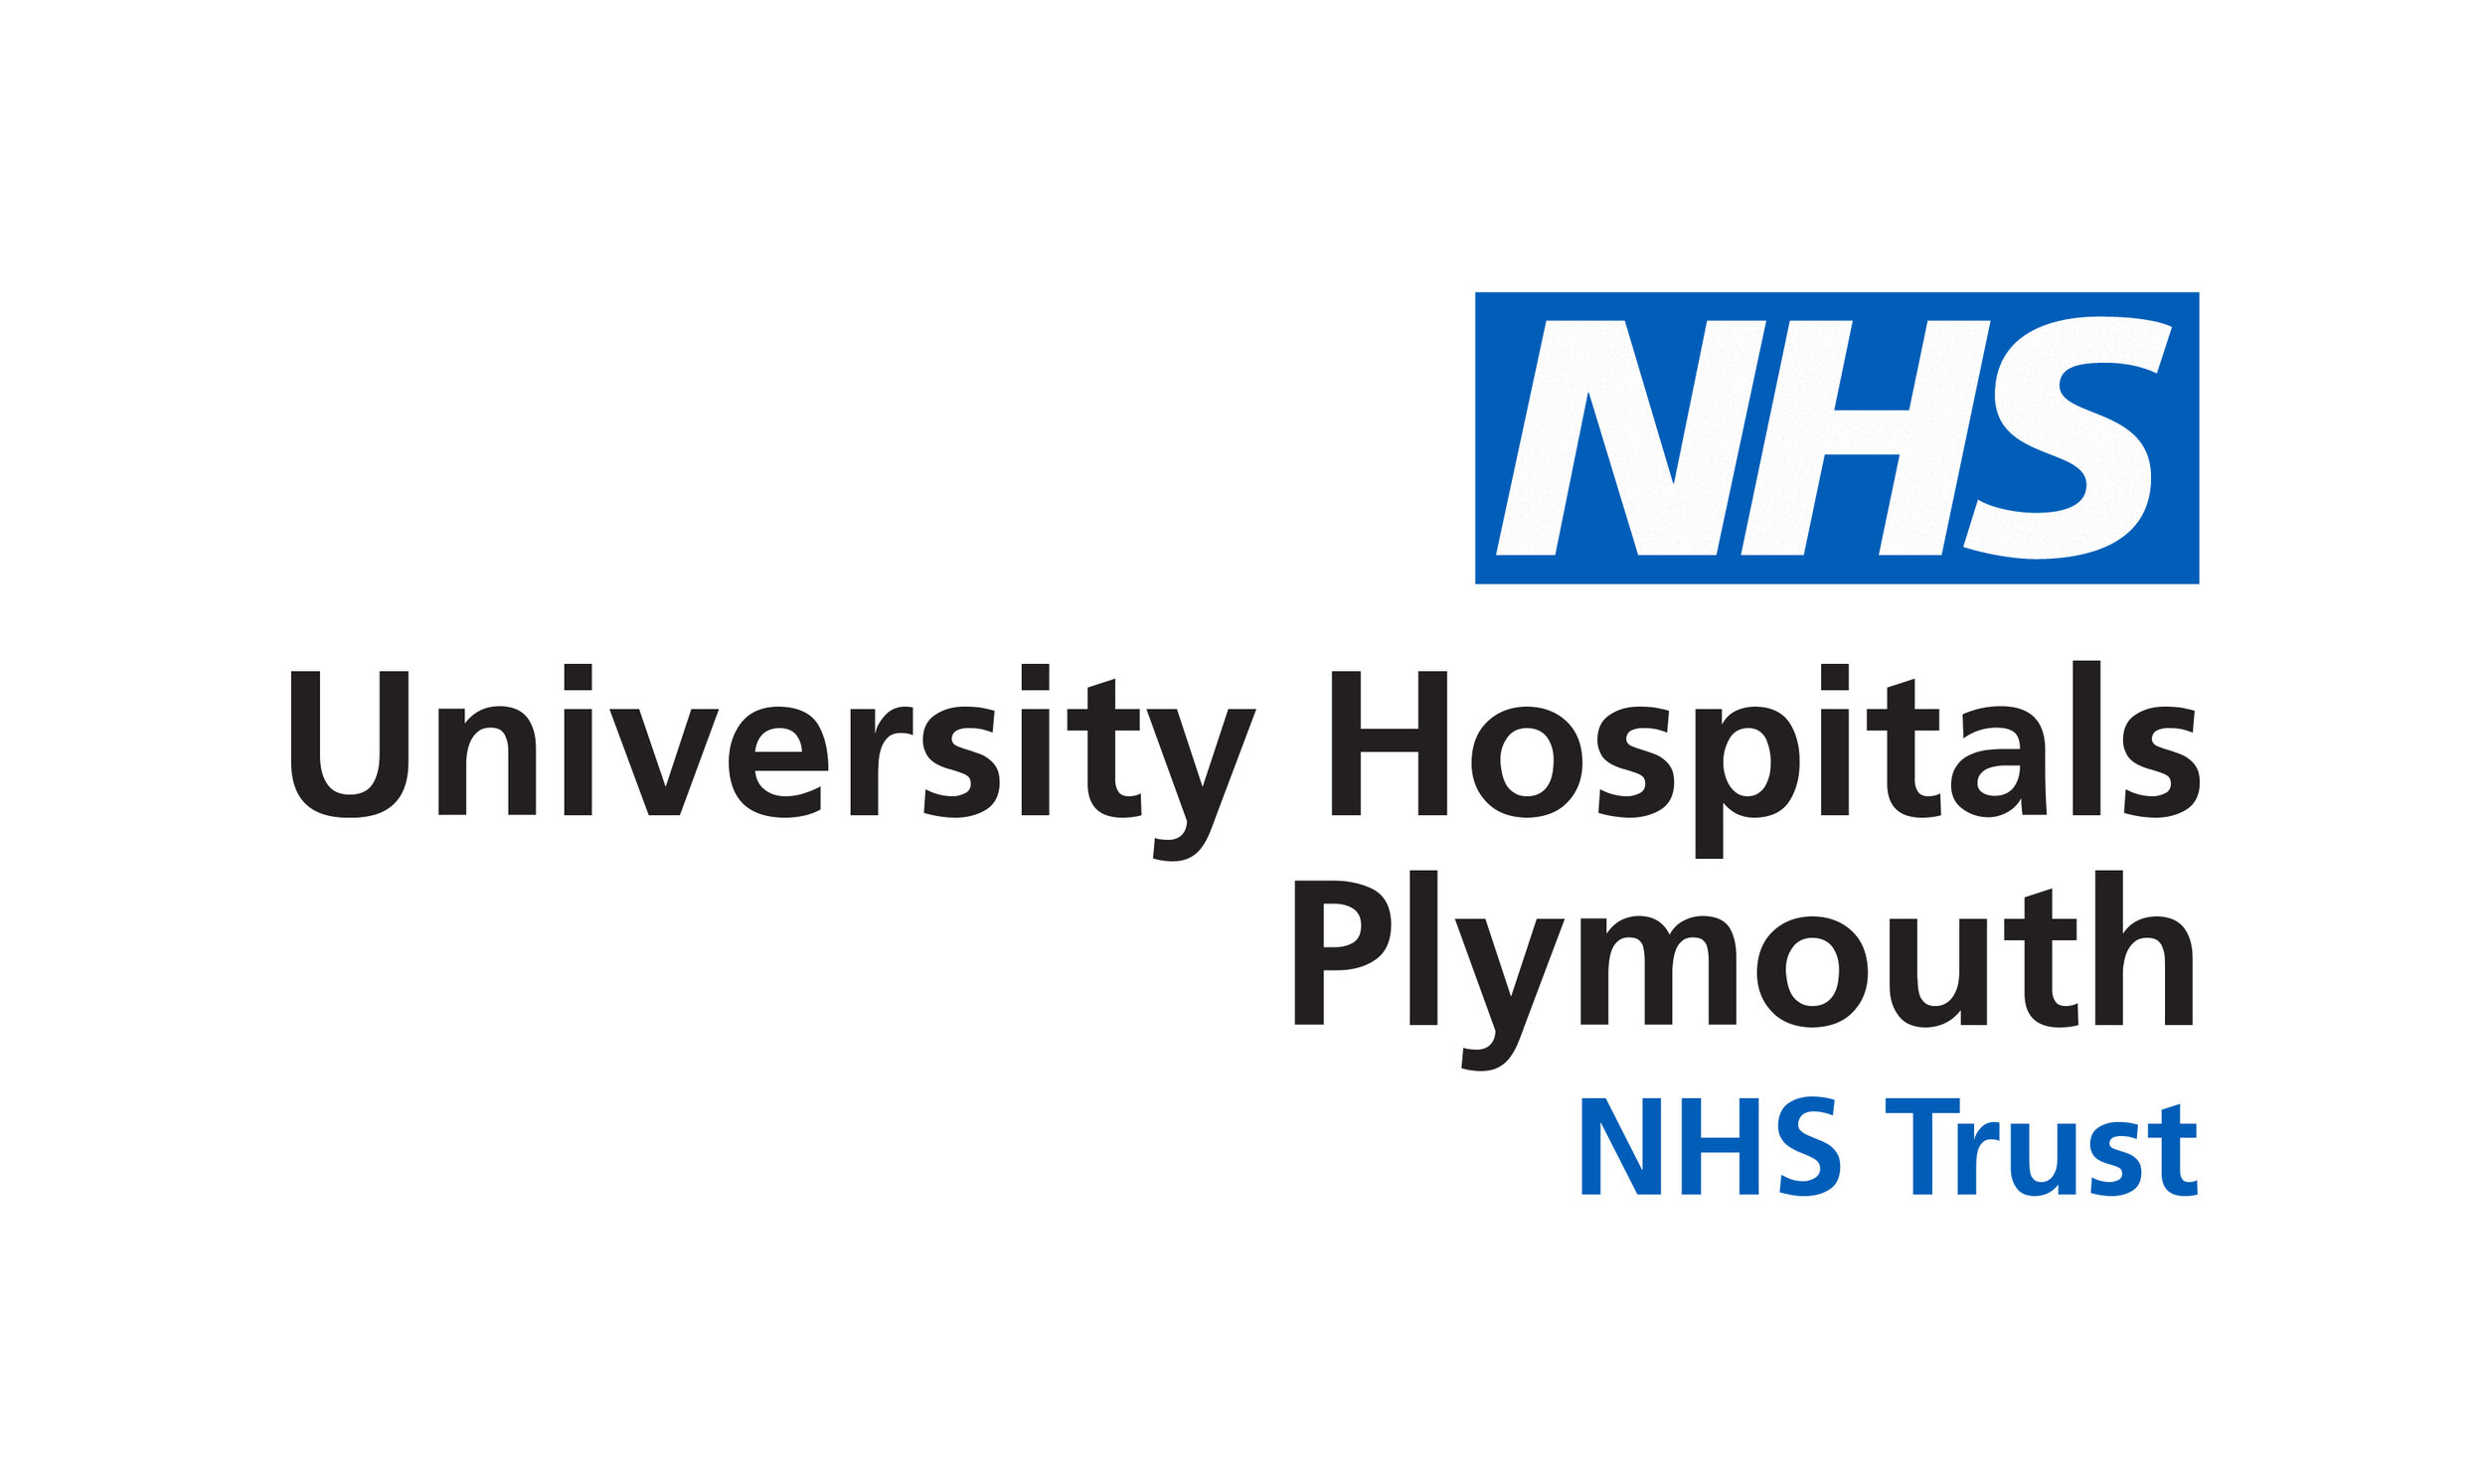 University_Hospitals_Plymouth_NHS_Trust_RGB_Right Aligned_blue (1).jpg